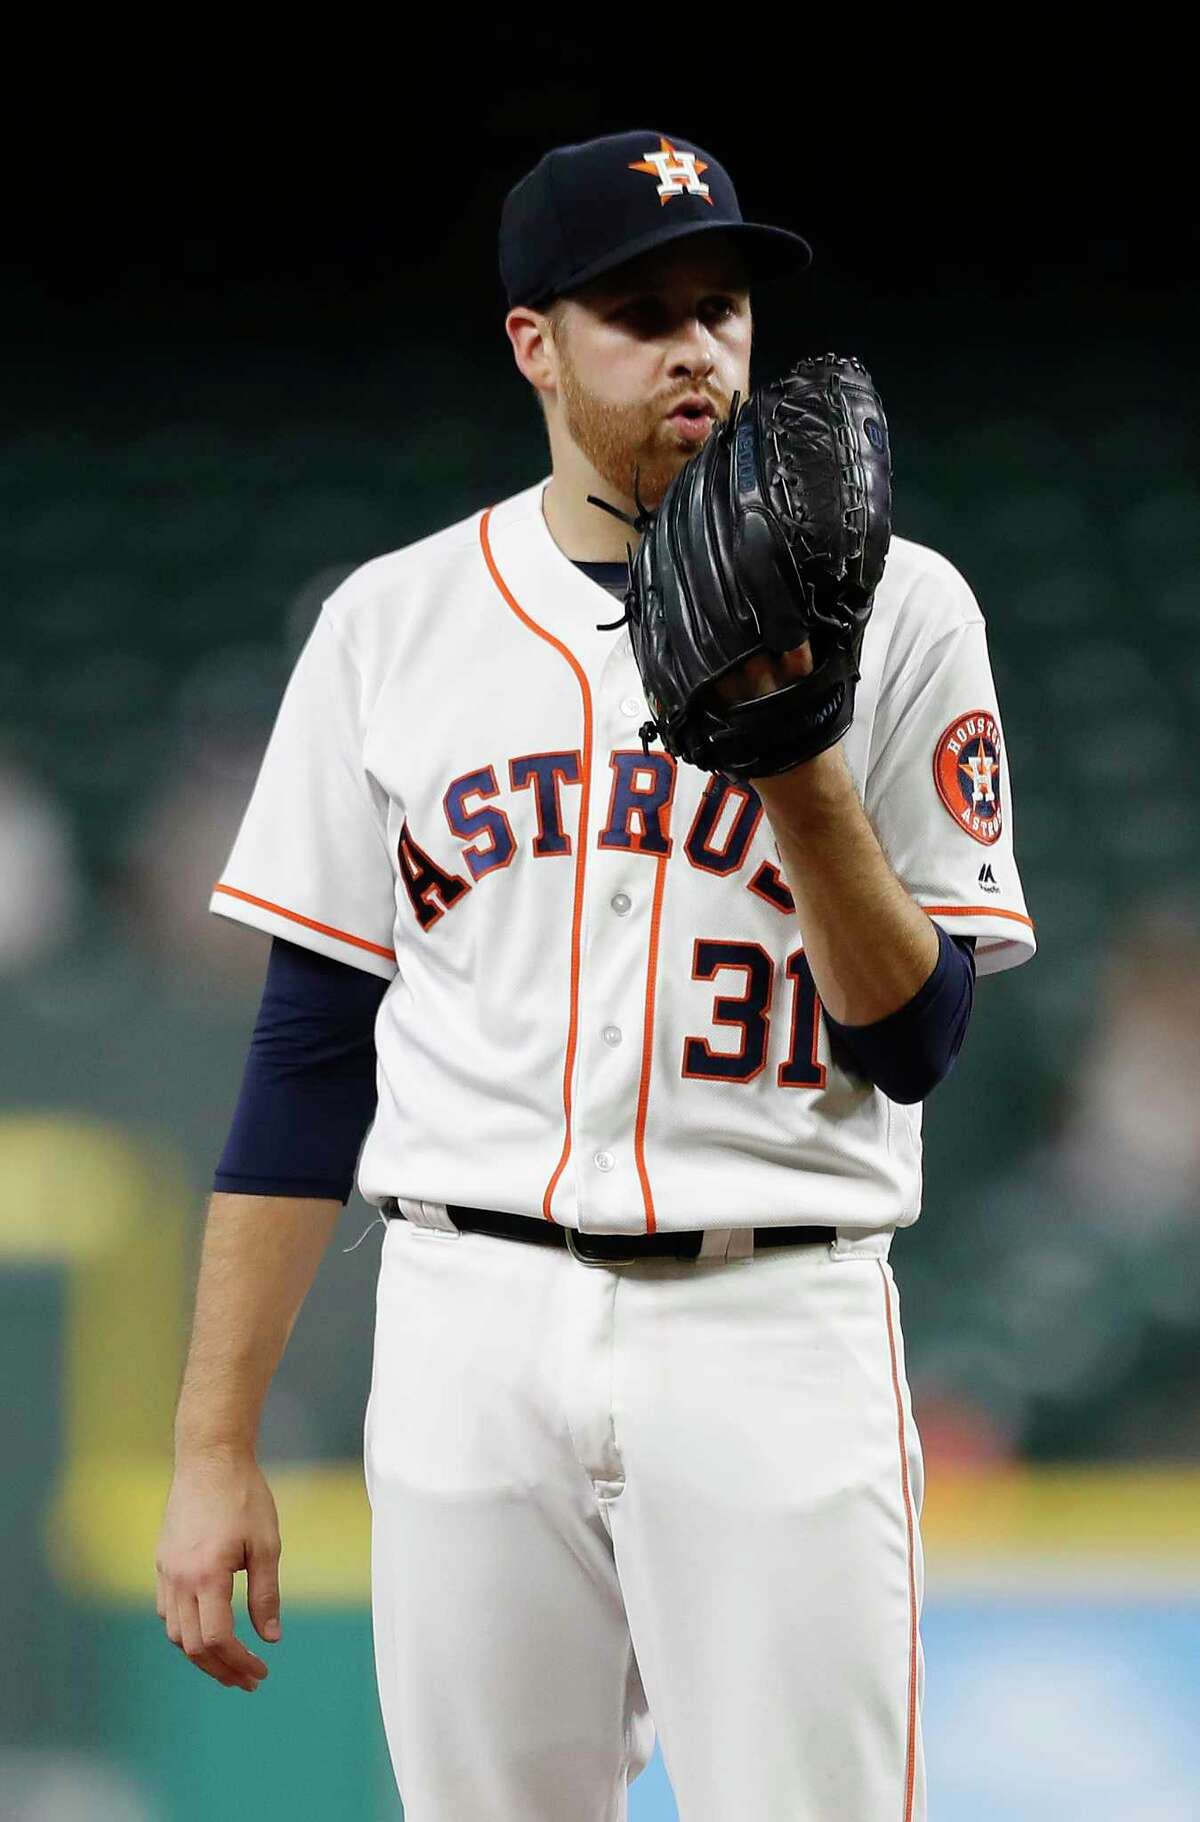 Houston Astros starting pitcher Collin McHugh (31) between pitches during the first inning of an MLB baseball game at Minute Maid Park, Tuesday, Sept. 19, 2017, in Houston.